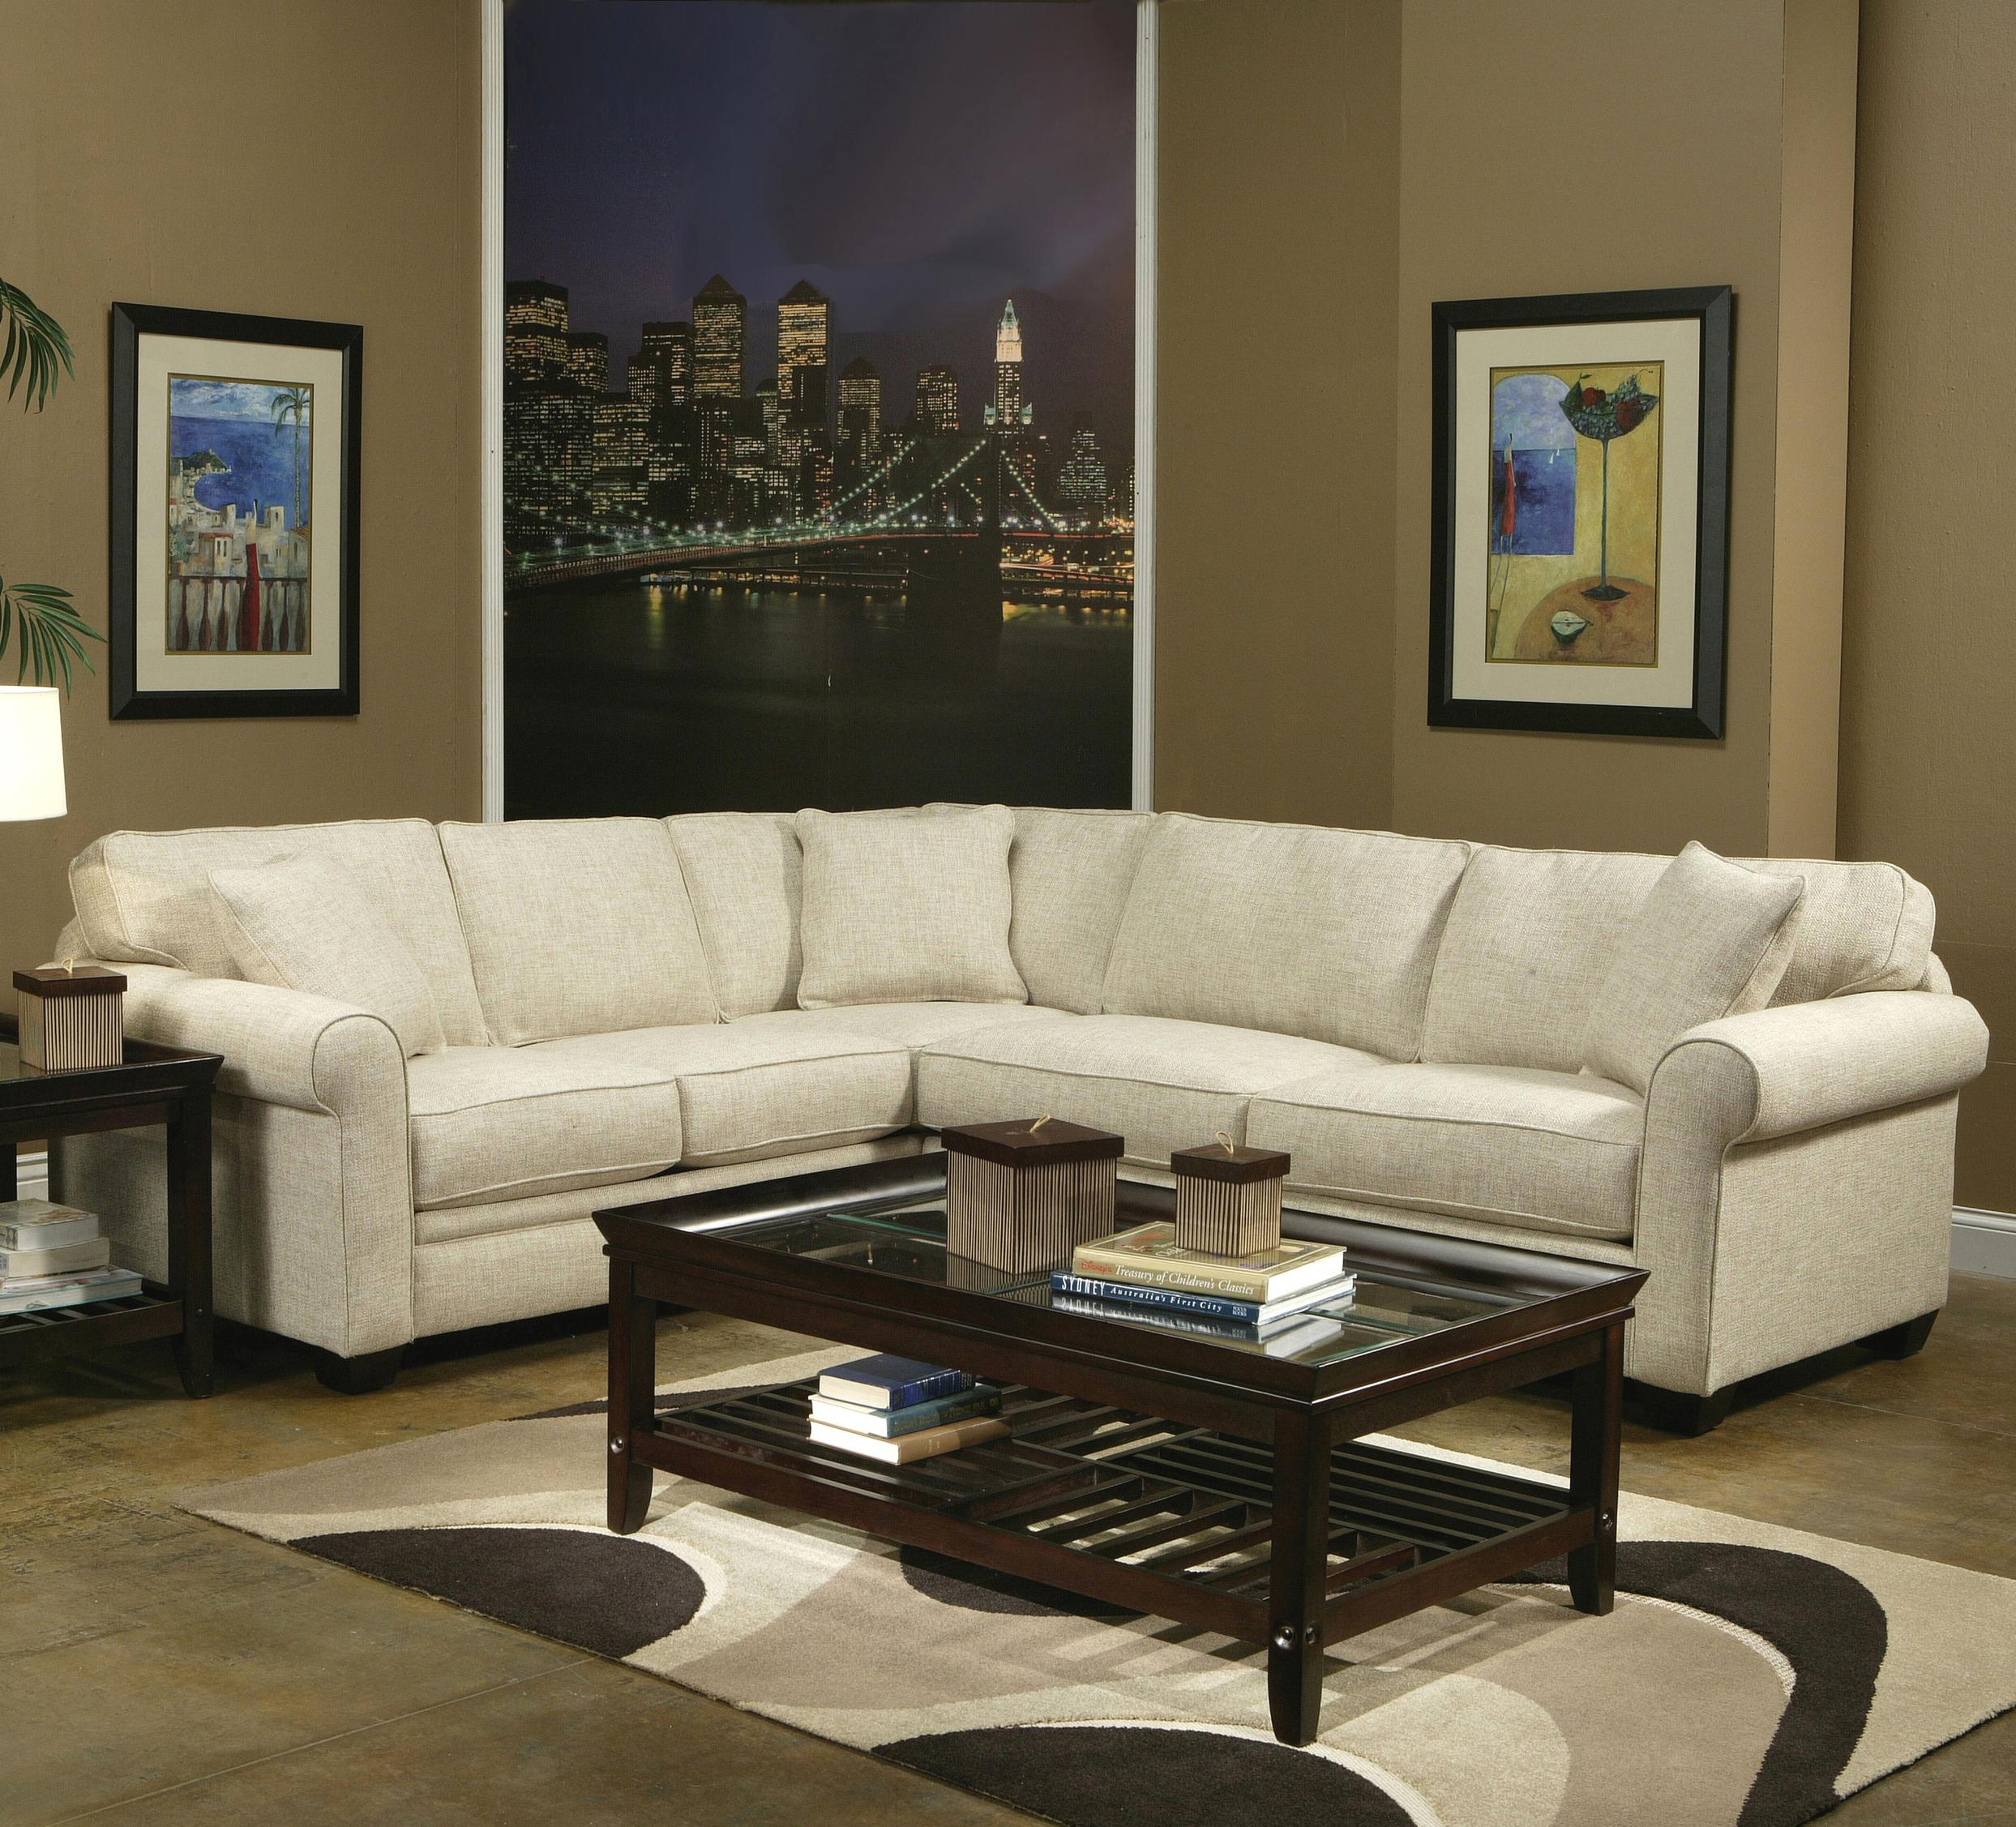 Hula Hula 2 Piece Sectional w Roll Arms Rotmans Sectional